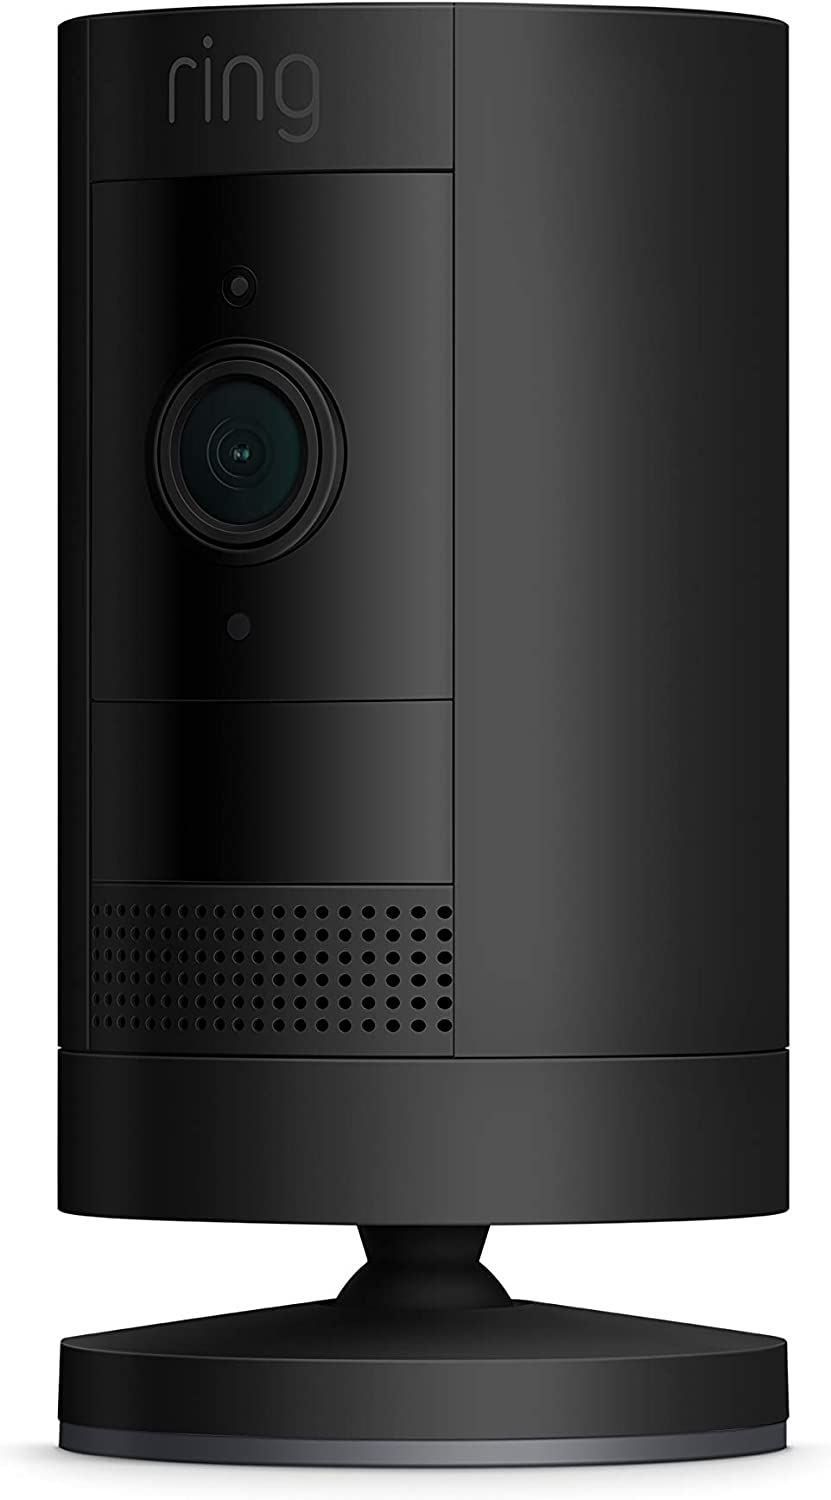 Ring Stick Up Cam Battery HD security camera with custom privacy controls, Simple setup, Works with Alexa - Black (3rd Gen, 2019 release)